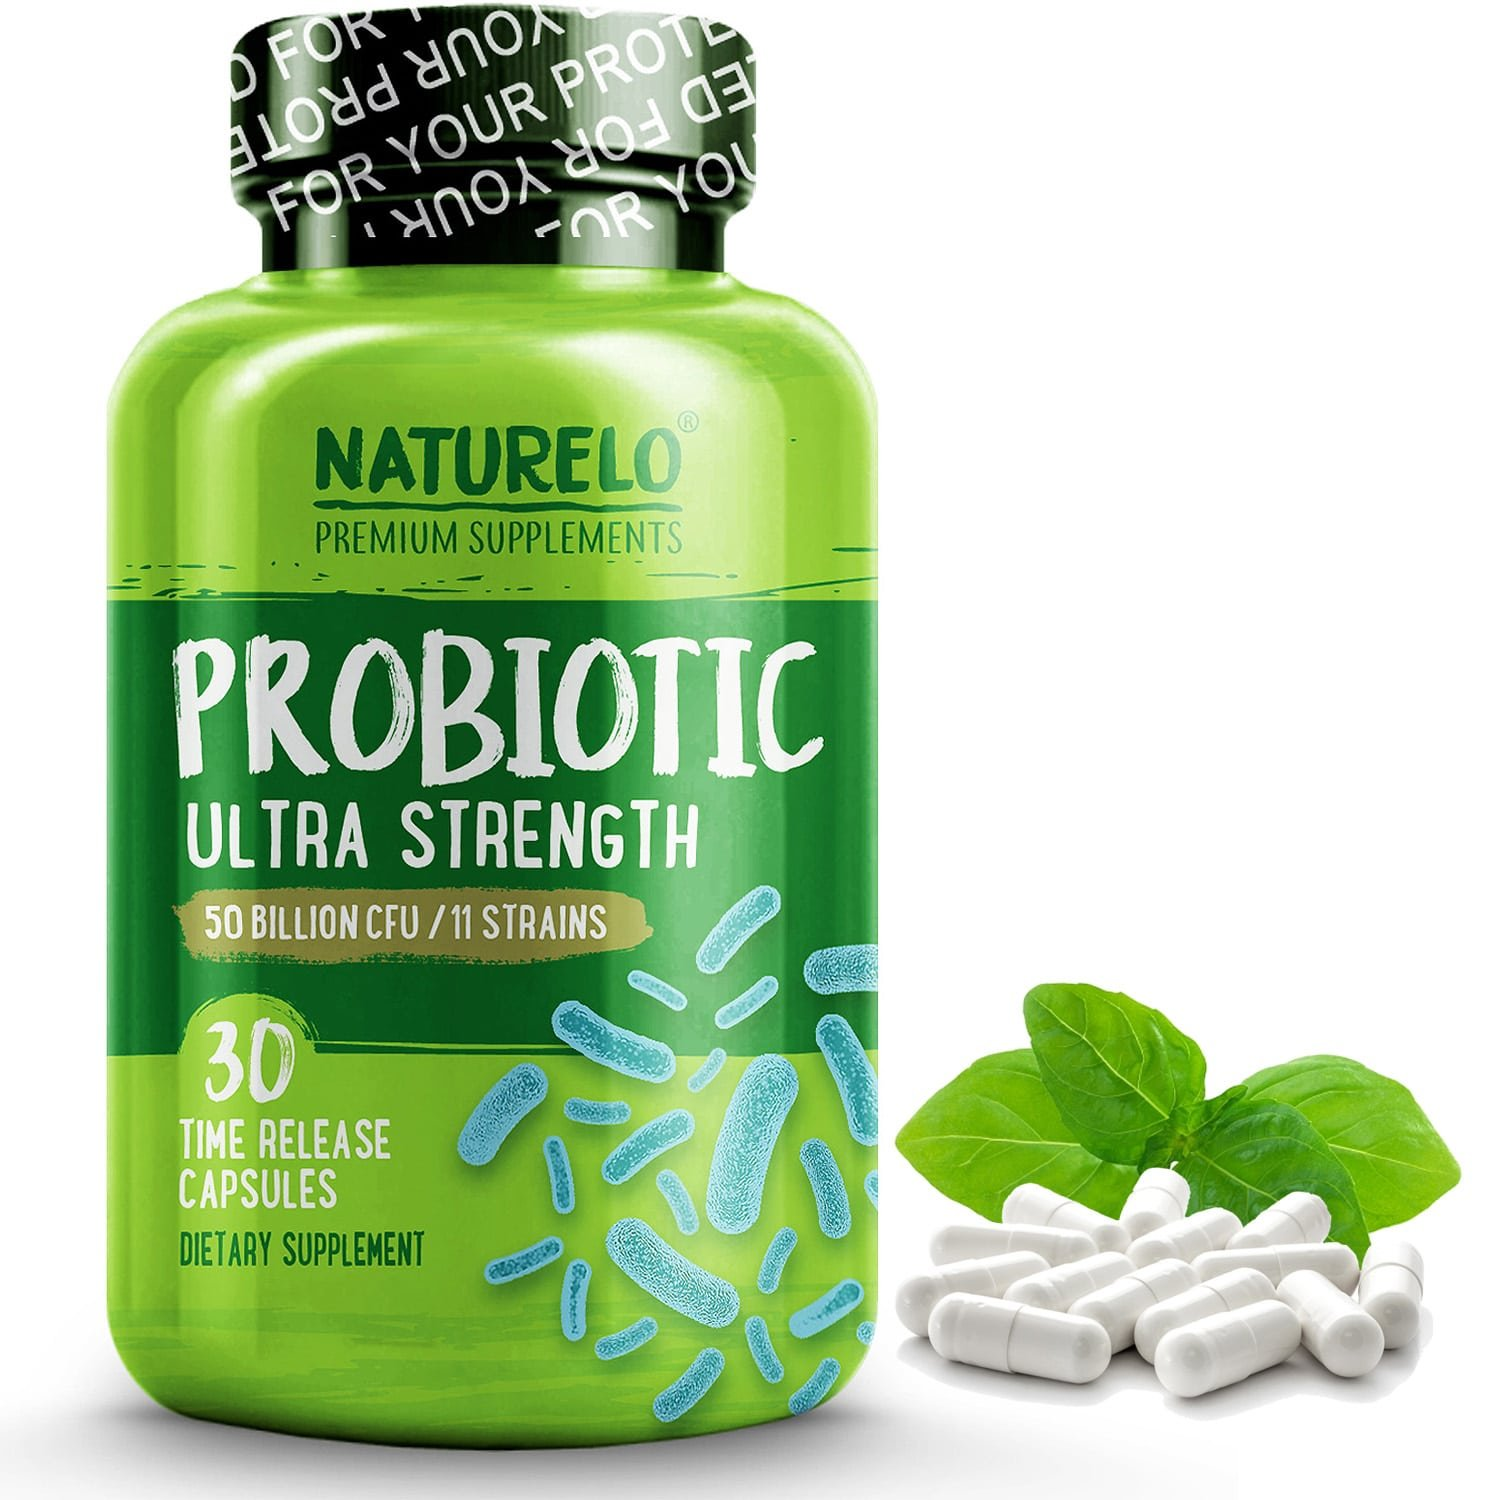 NATURELO Probiotic Supplement - Best for Digestive Health and Immune Support - Ultra Strength Probiotics - 50 Billion CFU - 11 Strains - No Refrigeration Needed - 30 Vegetarian Capsules